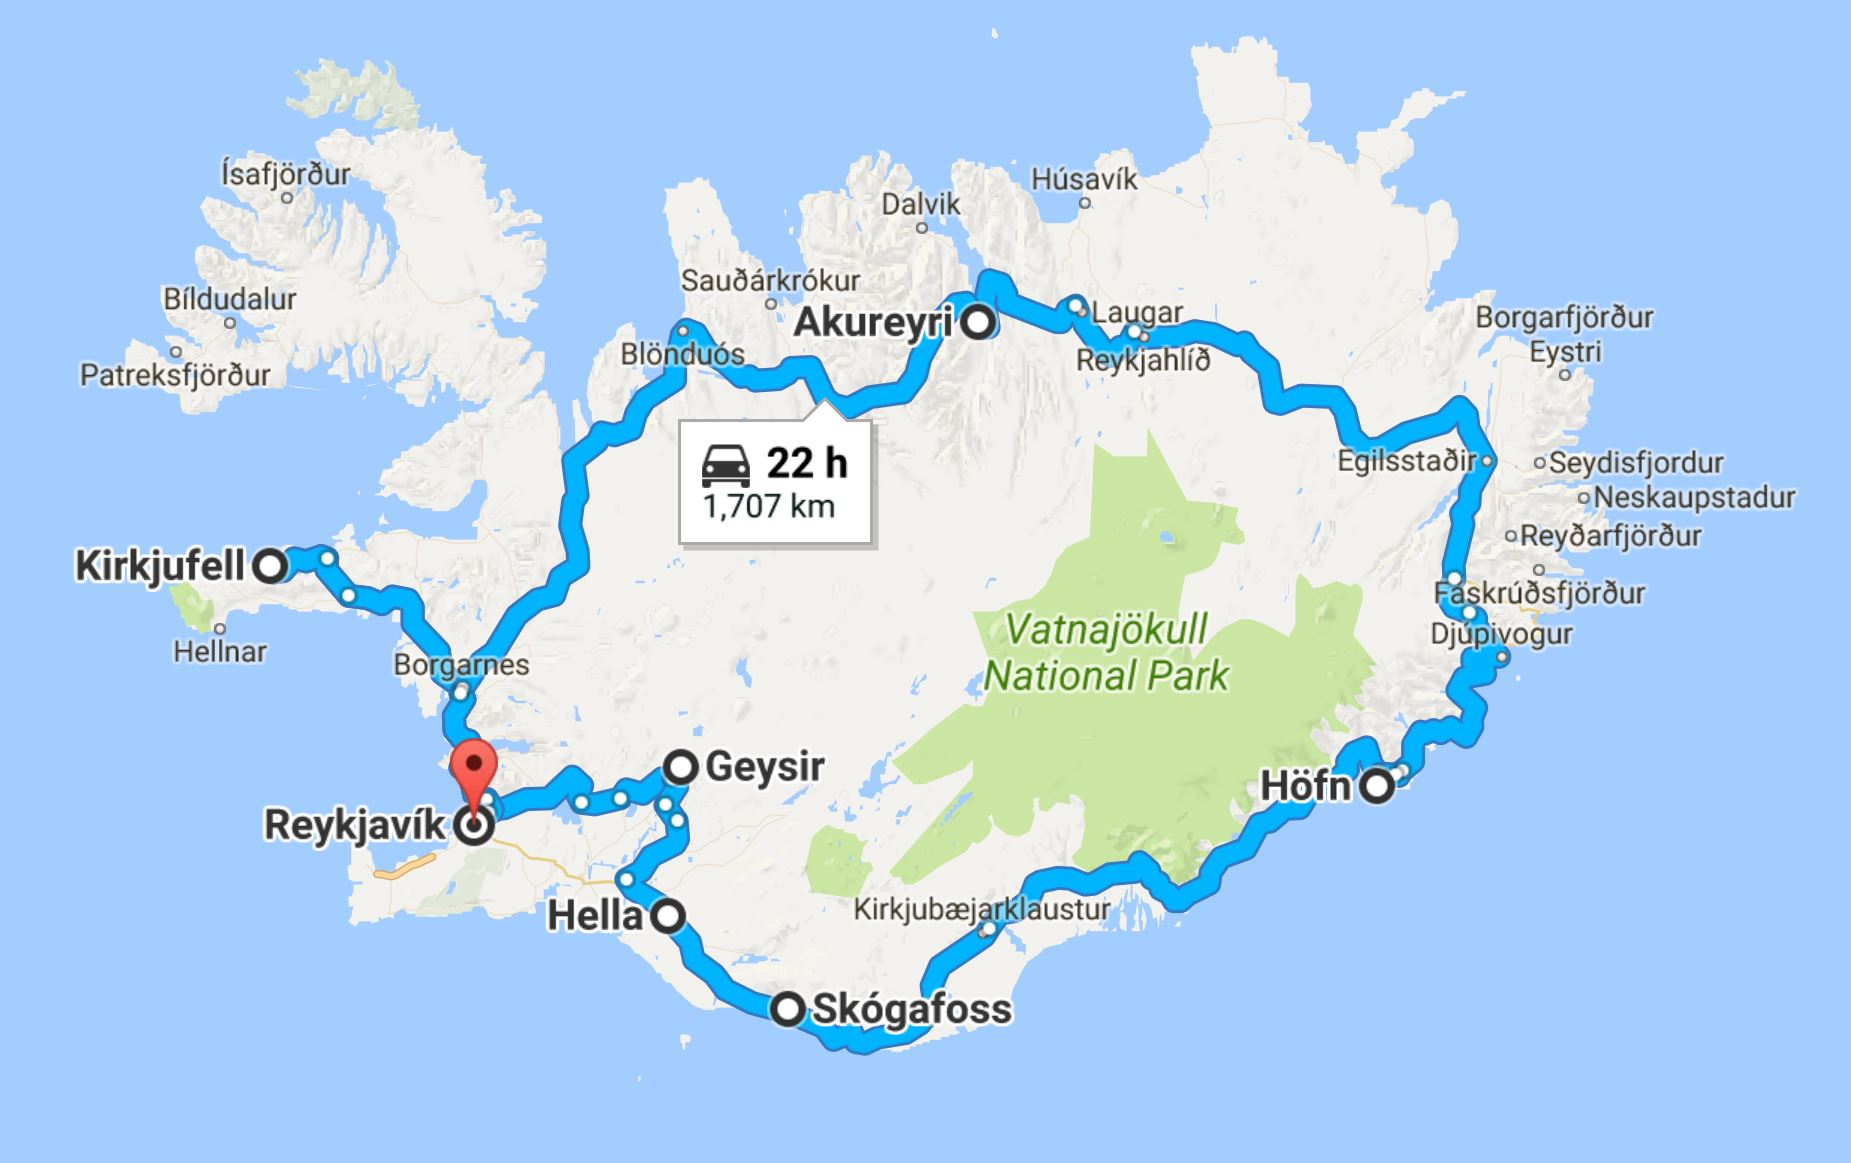 Our 8-day route